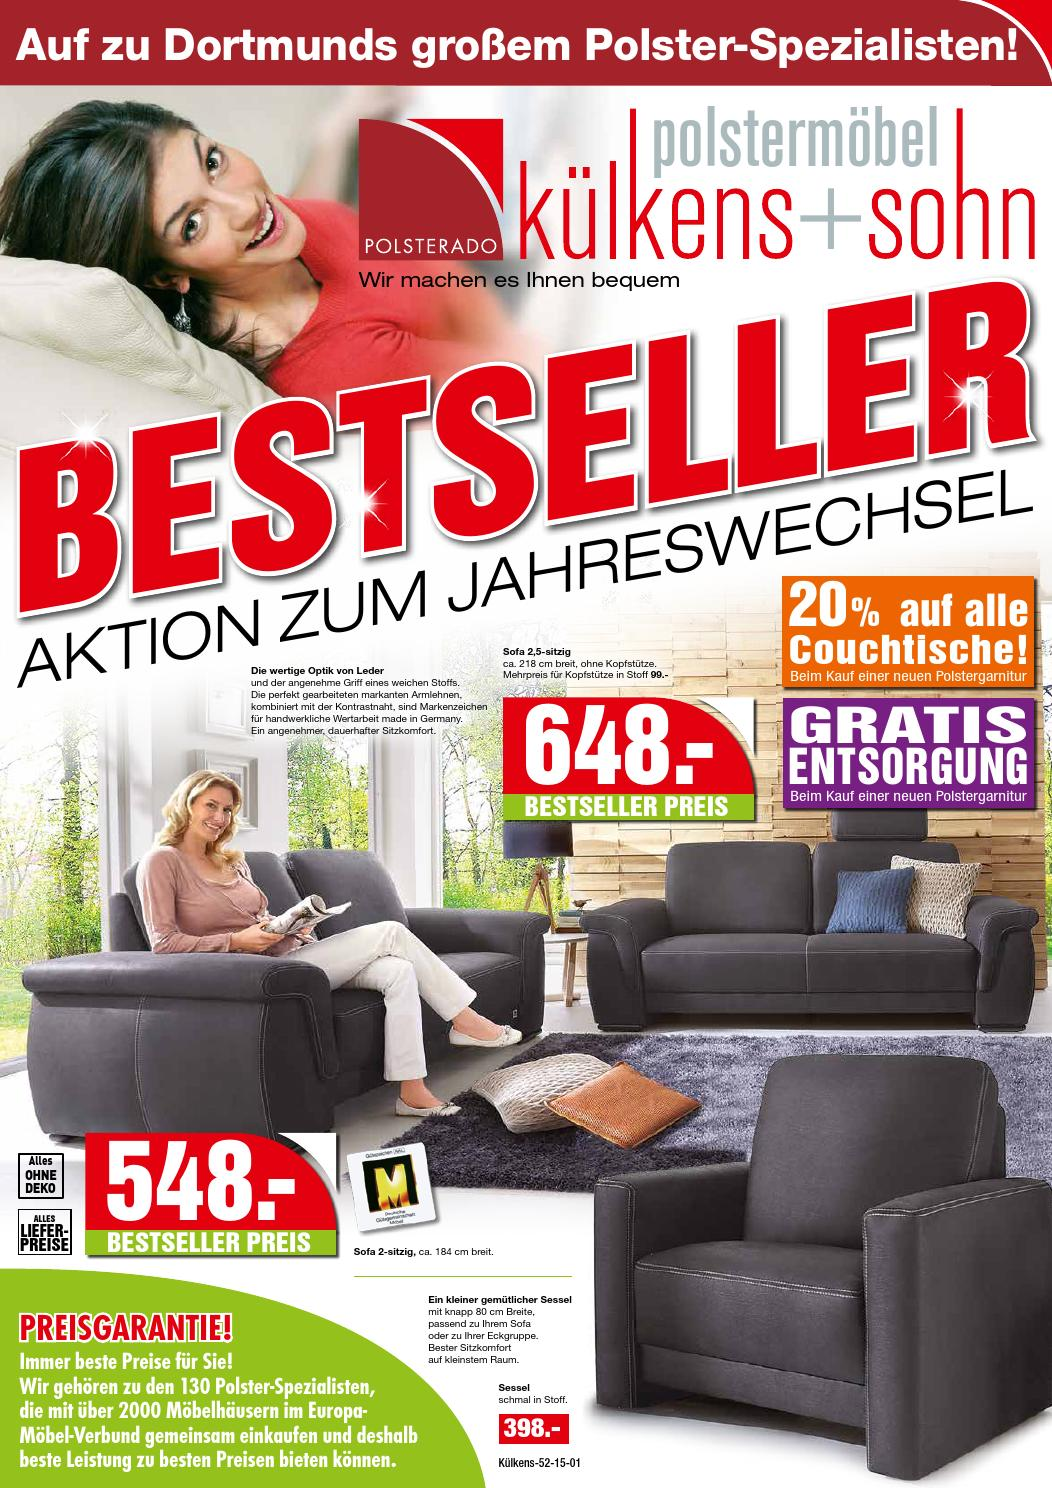 kuelkens sohn 2014 kw39 by perspektive werbeagentur issuu. Black Bedroom Furniture Sets. Home Design Ideas